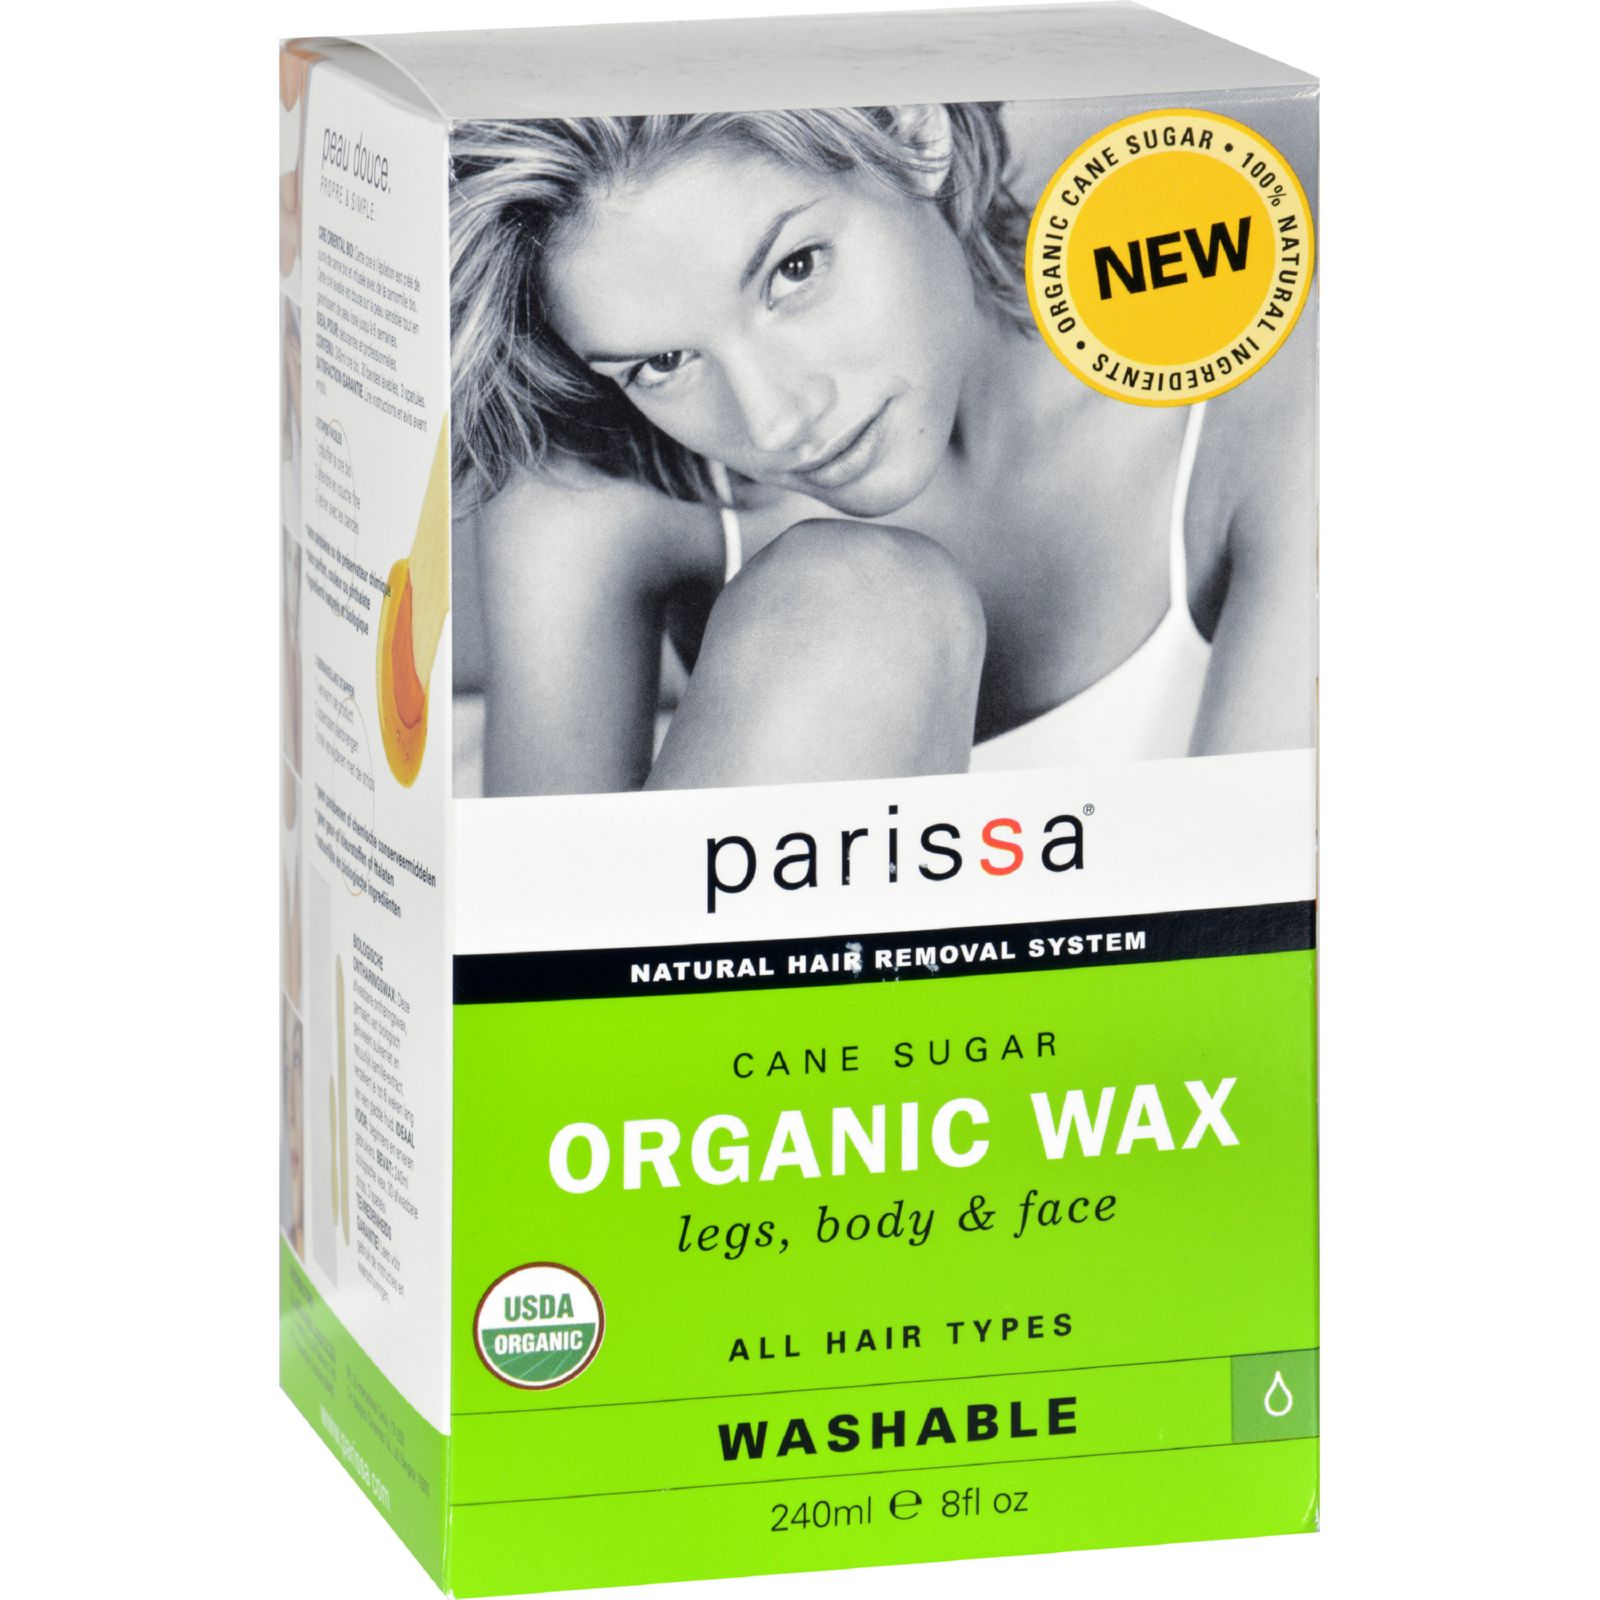 Parissa Hair Removal Wax  Organic  Cane Sugar  8 oz